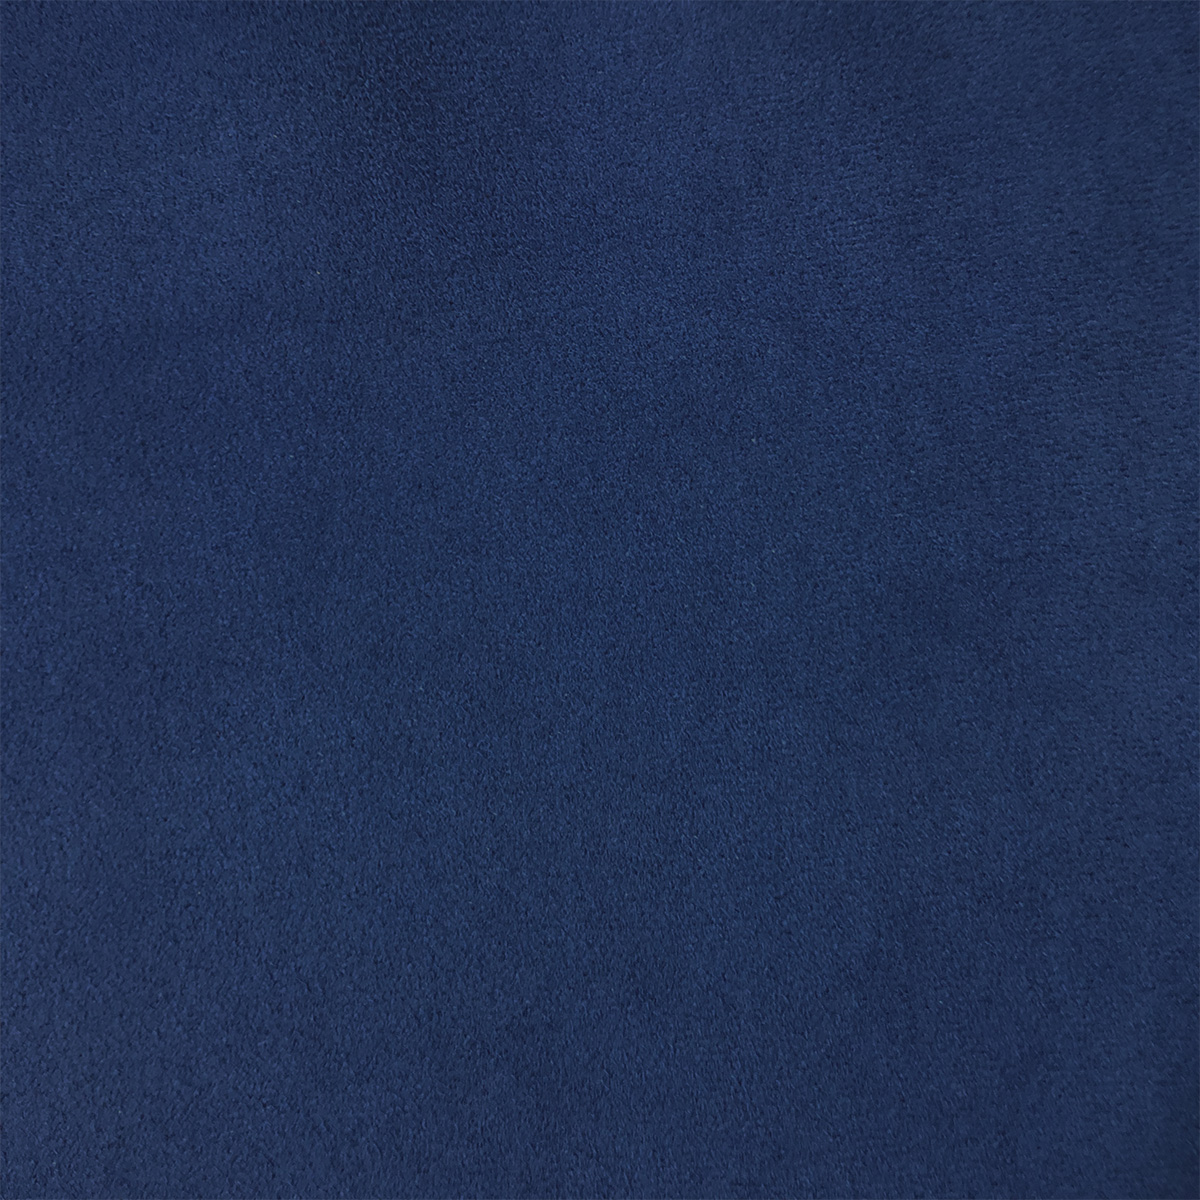 "Uni-Suede 1.25""W x 2.25""H x .09mm - 6 Pieces - Dark Blue"